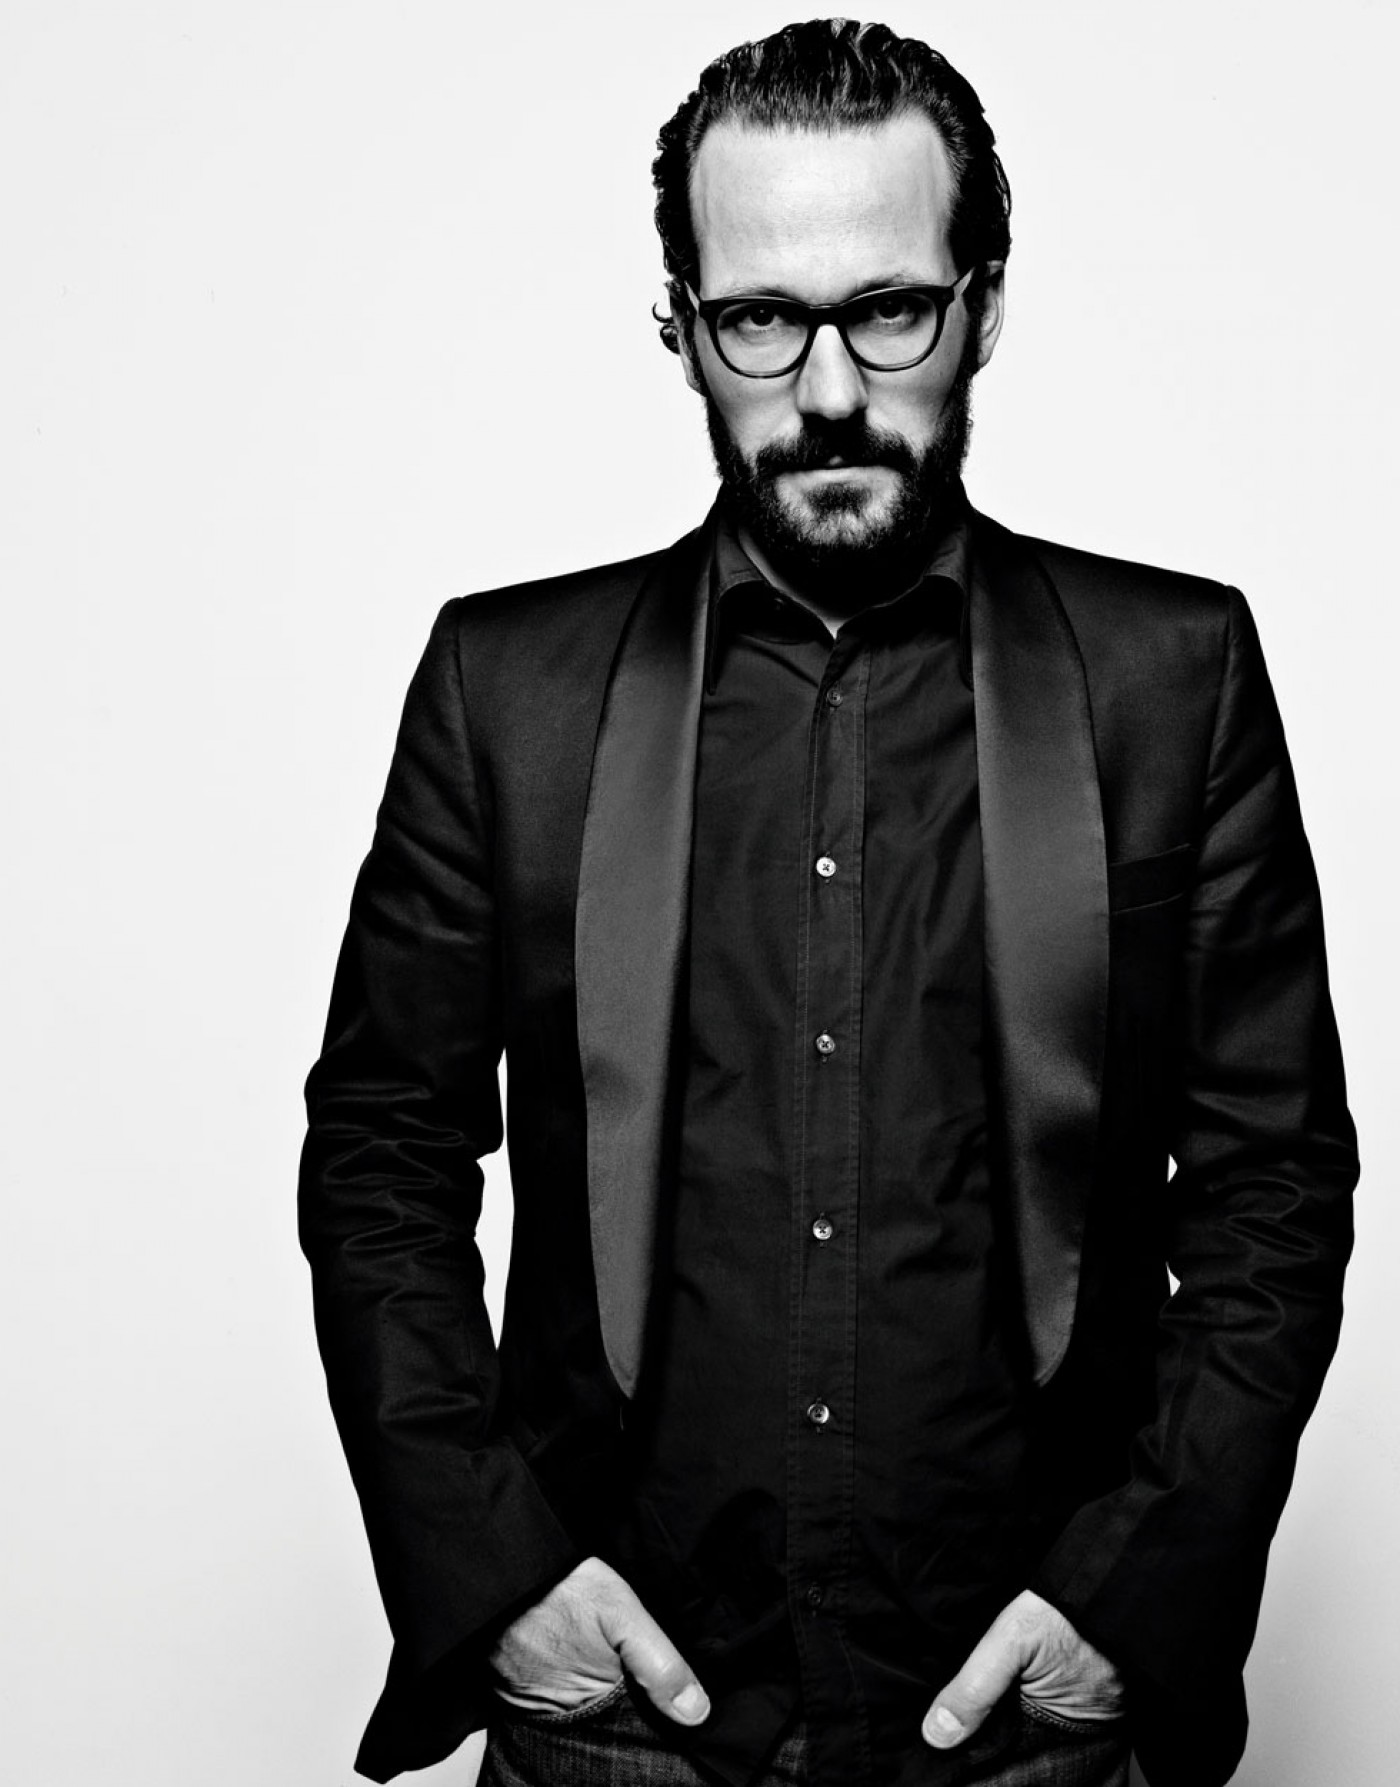 Interview. Konstantin Grcic